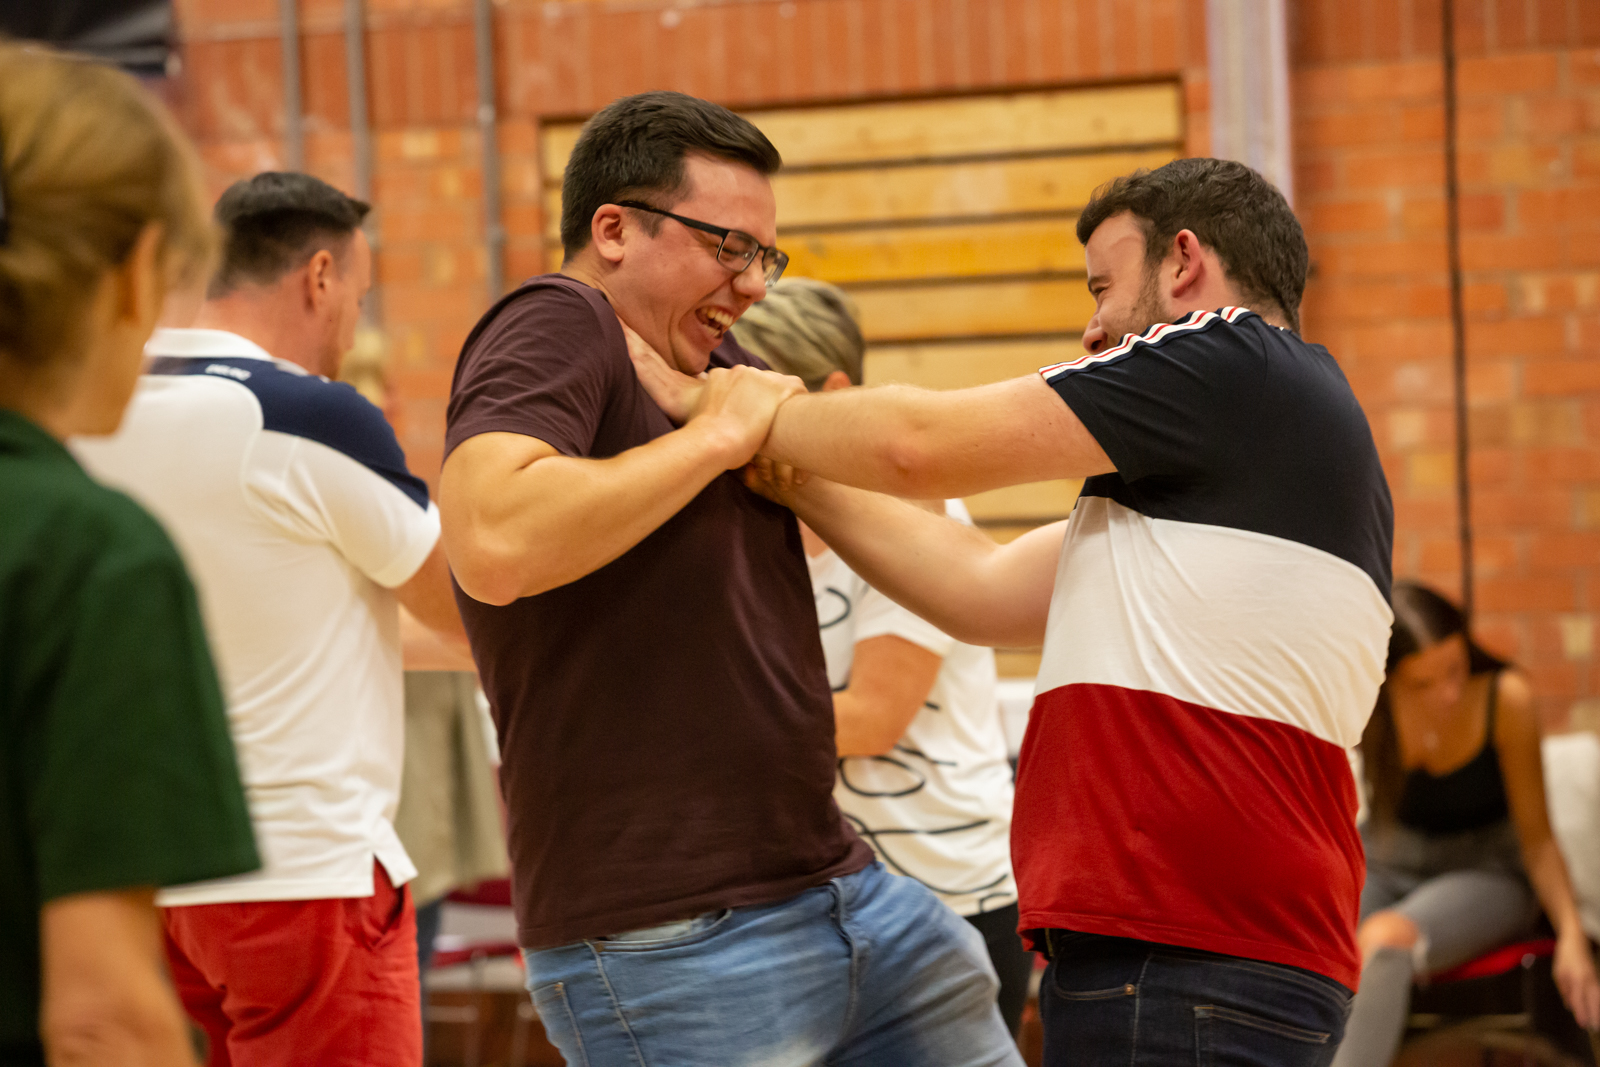 Stage combat team building experience for your event